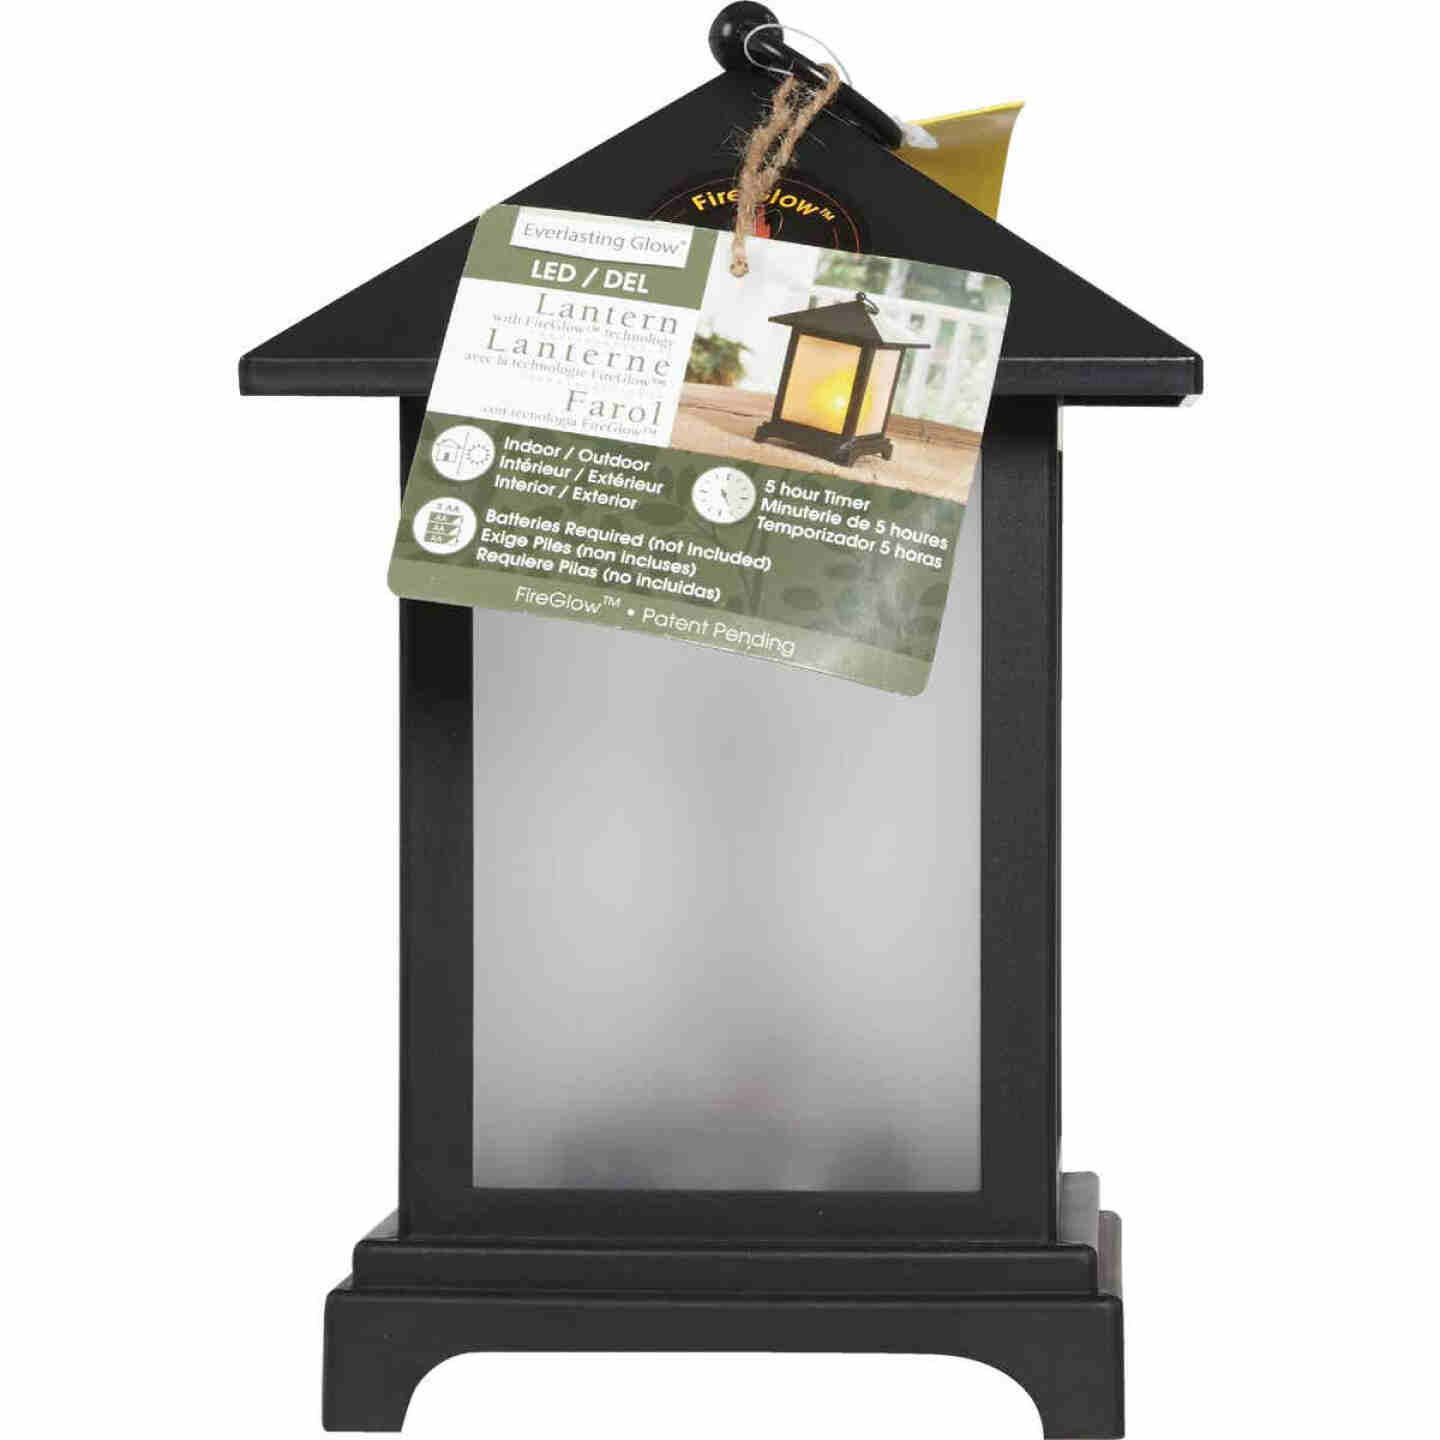 Everlasting Glow 4.13 In W. x 9.25 In. H. x 4.13 In. L. Black Square Patio Lantern Image 3